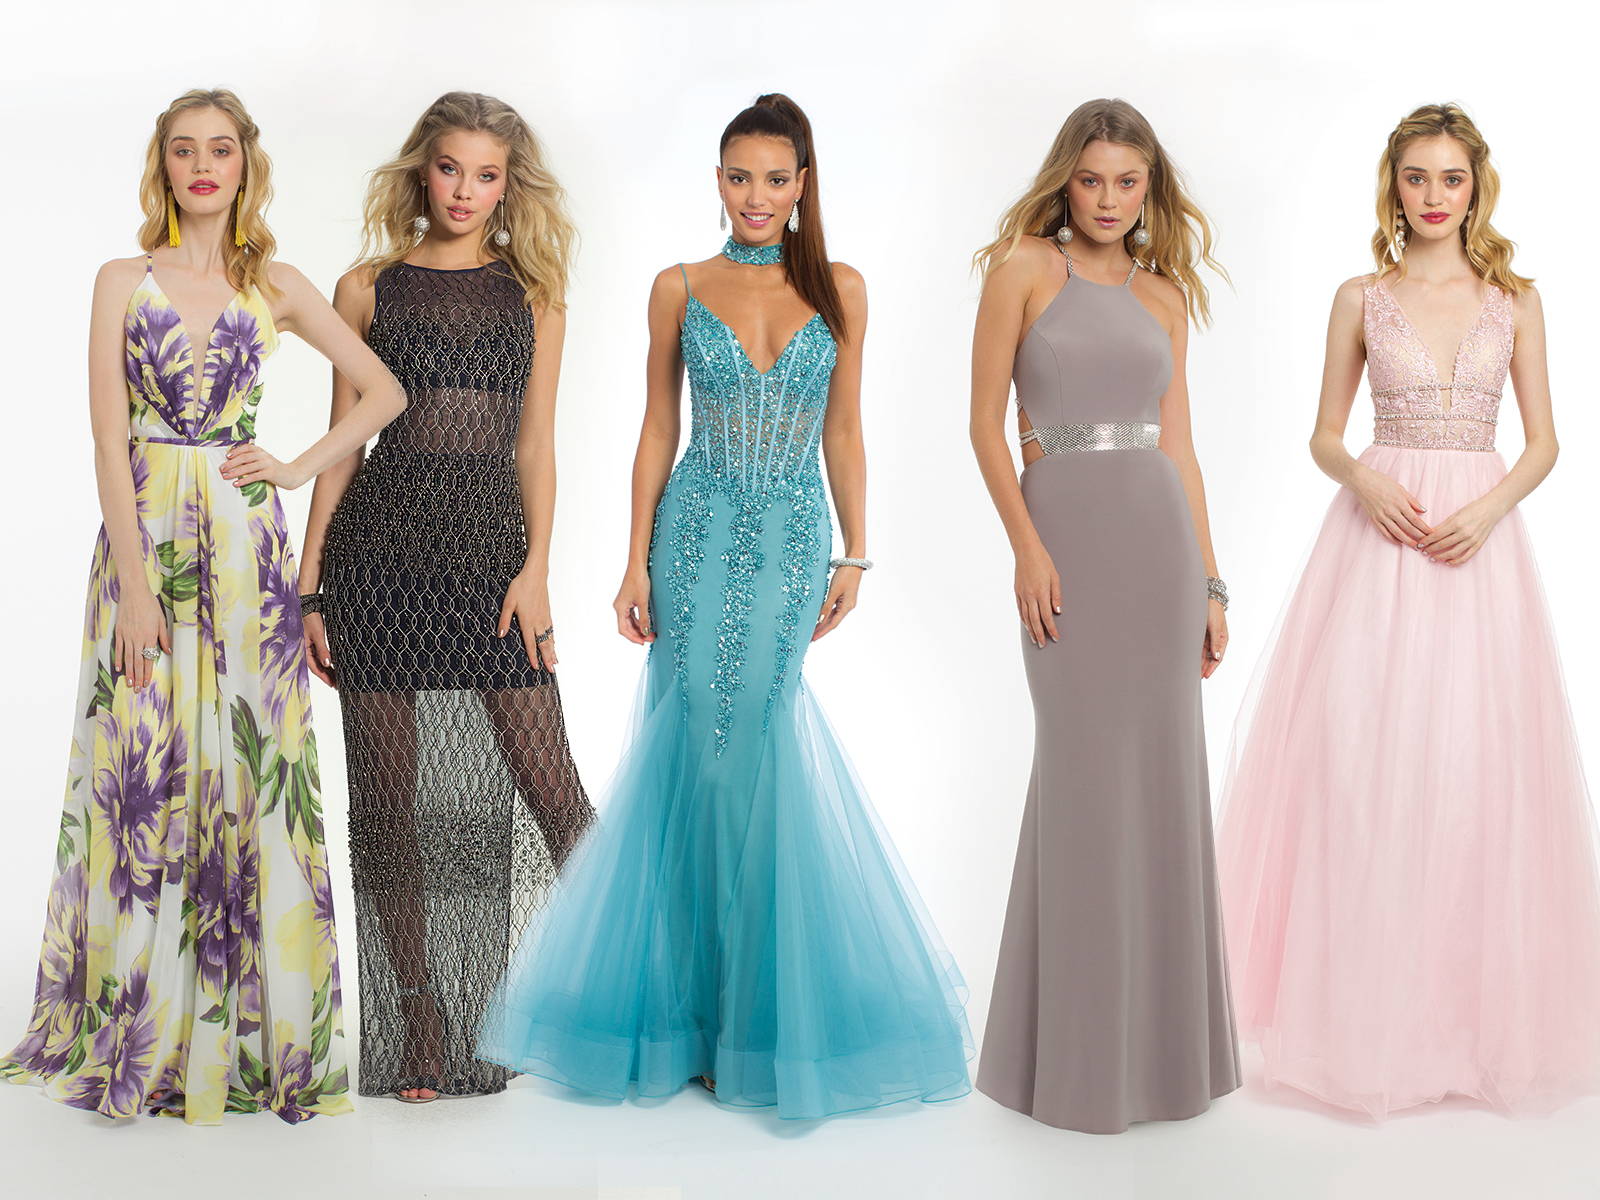 Prom Dresses for 5 Types of Style | Camille La Vie